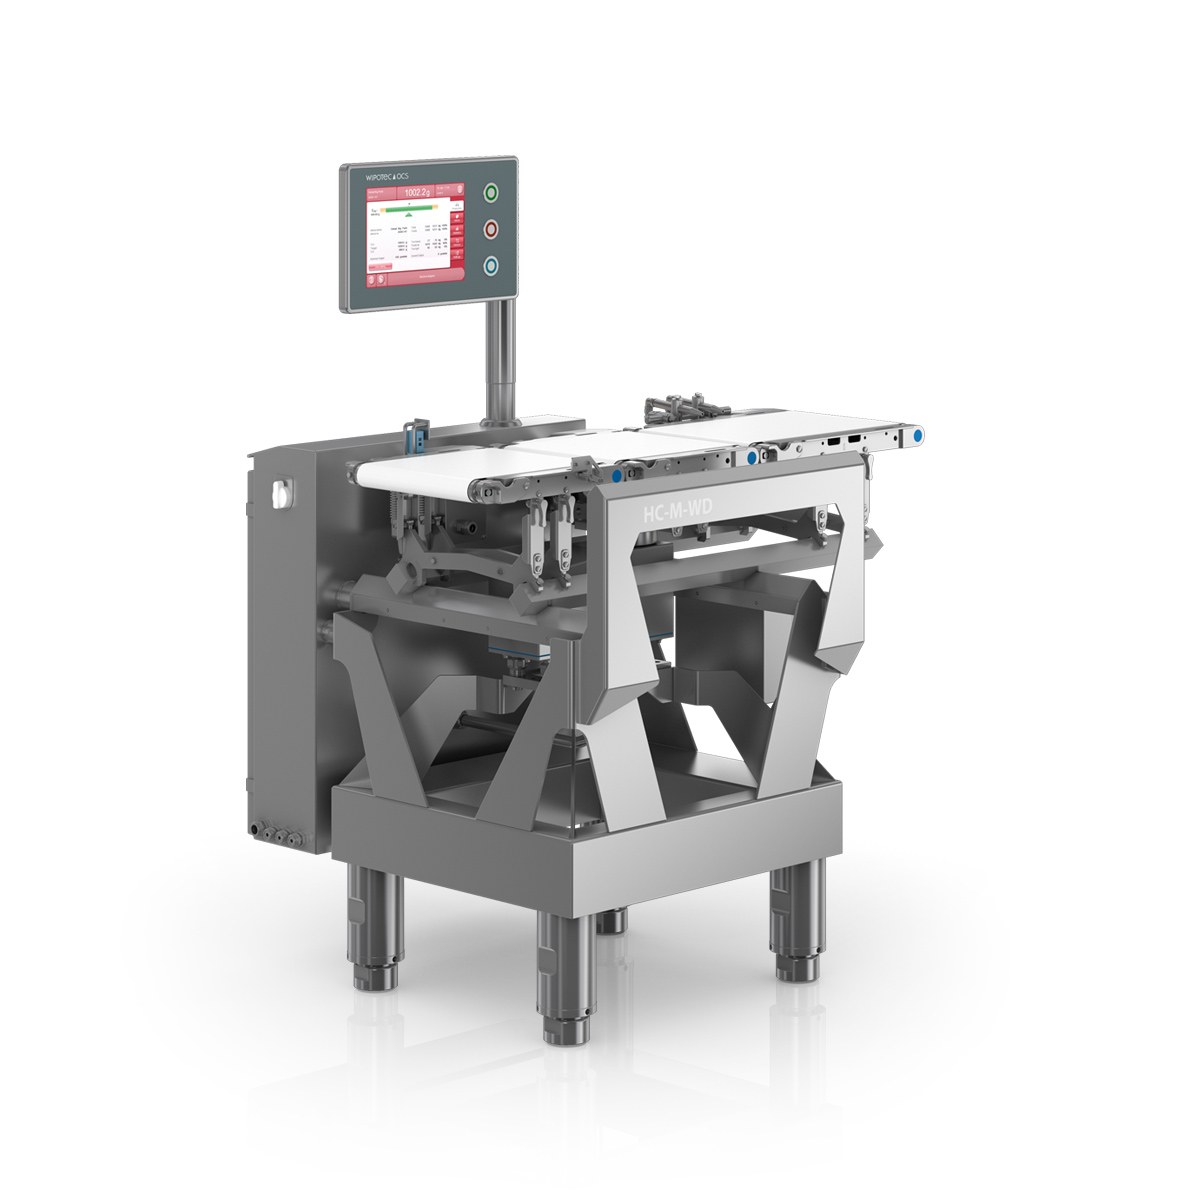 Checkweigher HC-M-WD left view